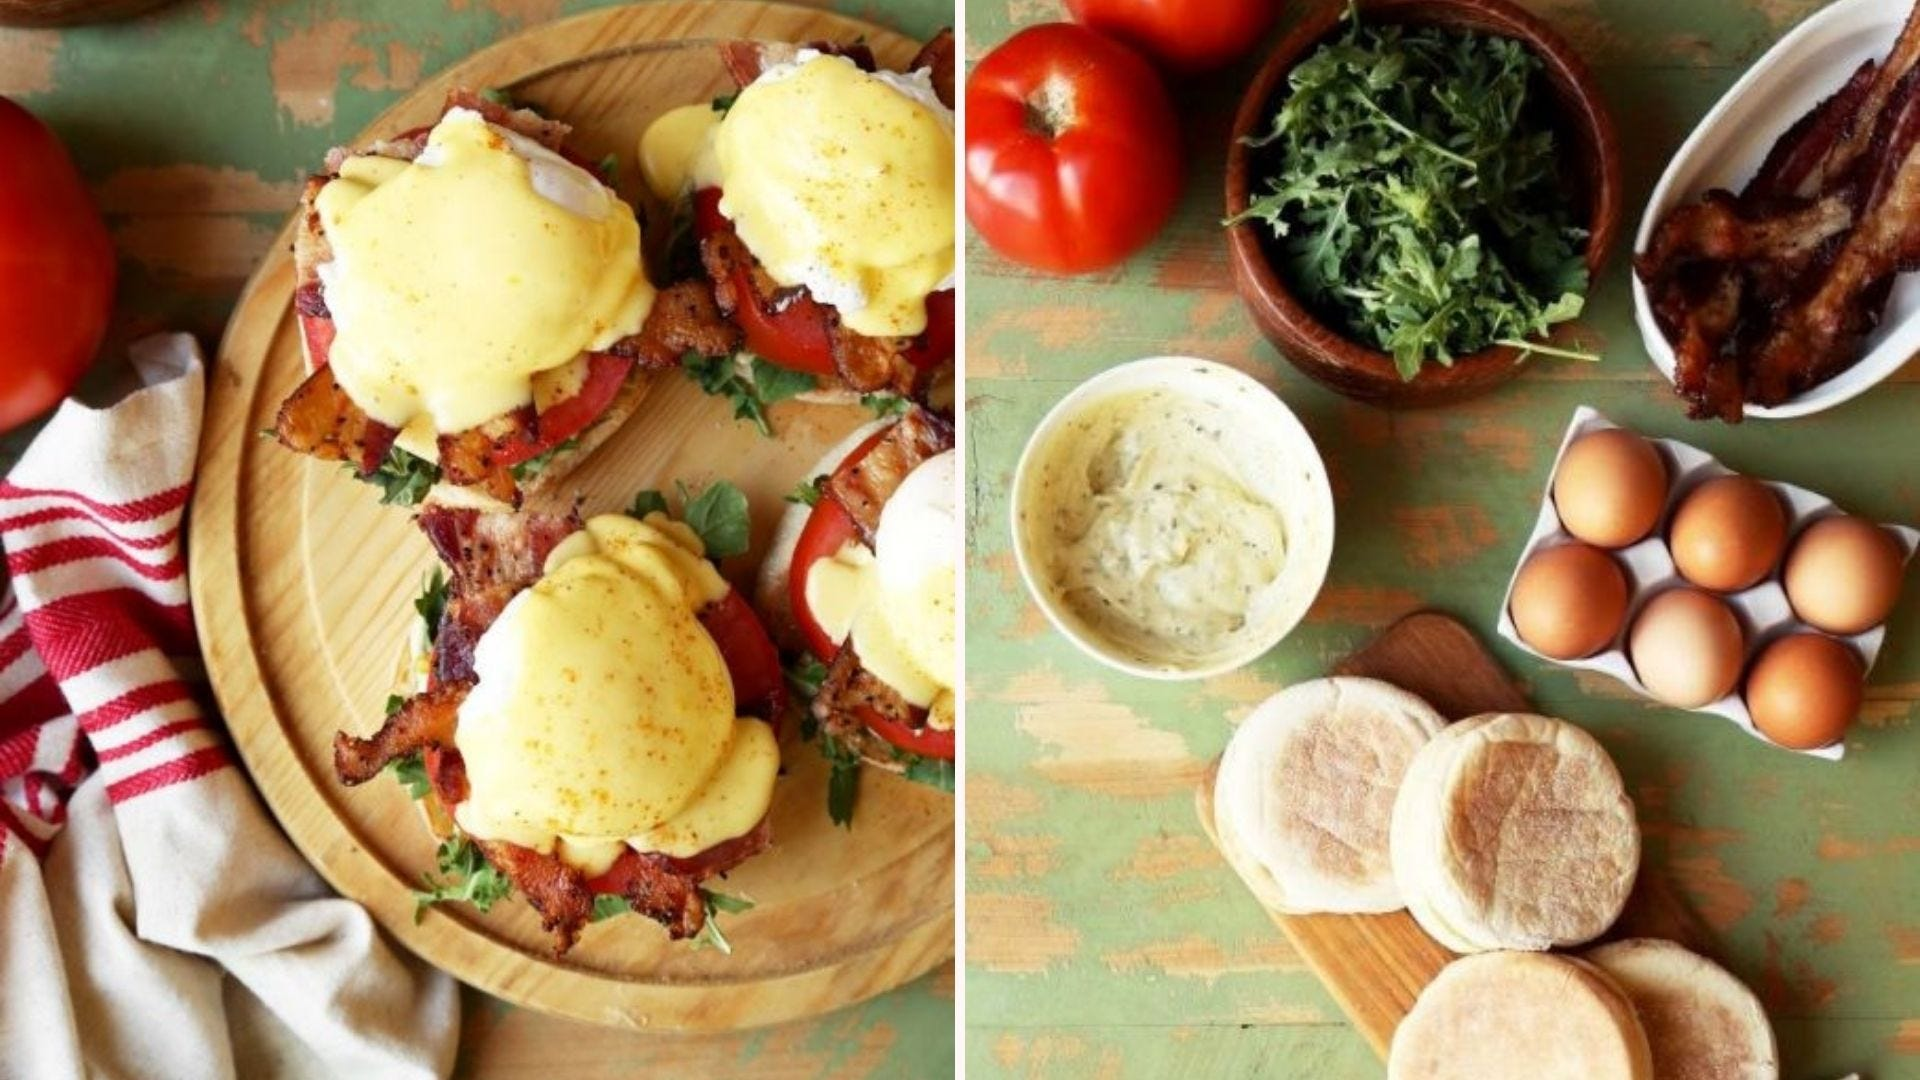 Four BLT eggs Benedict on a serving platter, and some of the ingredients on a counter.